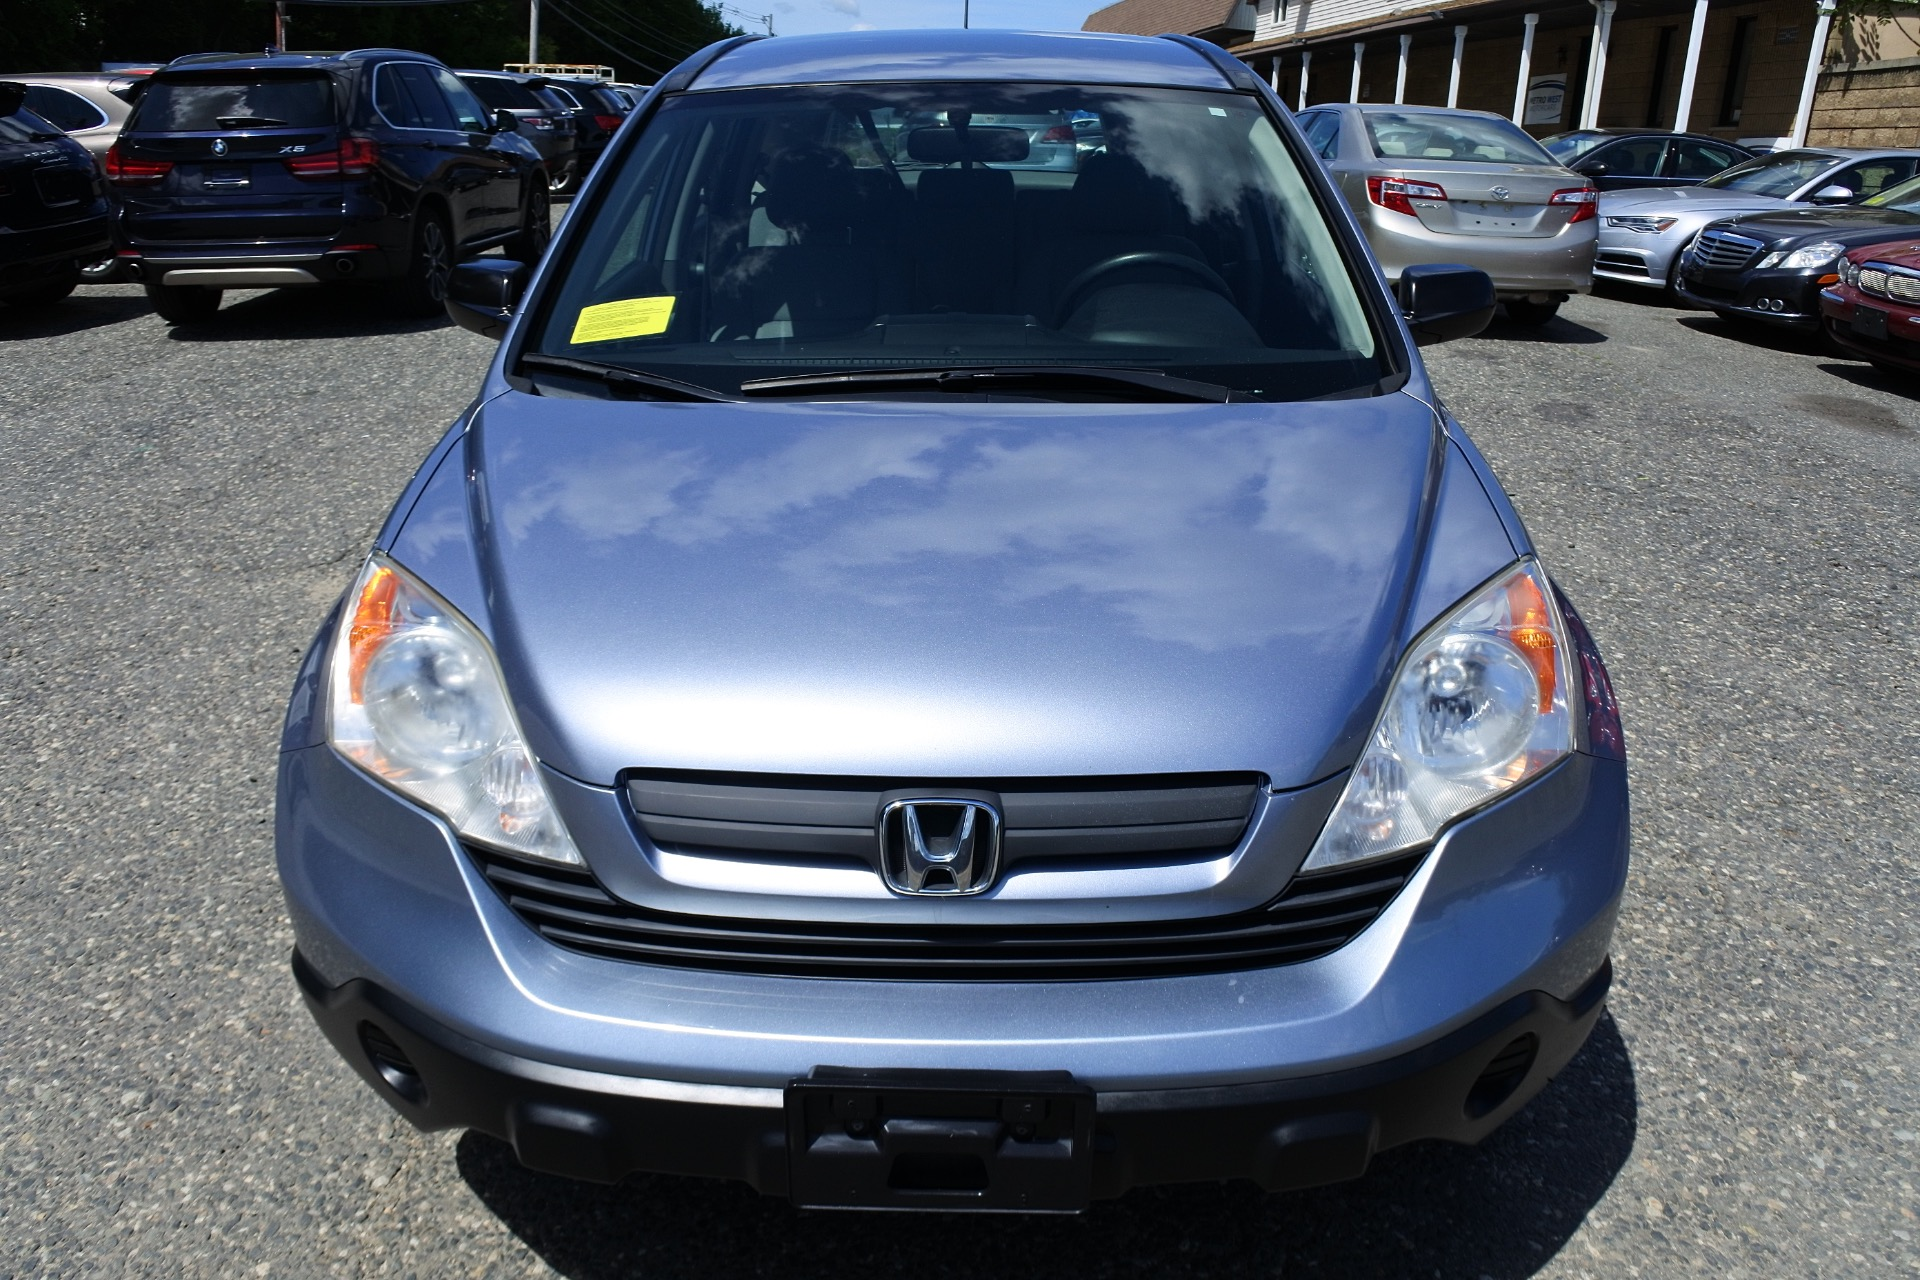 Used 2008 Honda Cr-v 4WD 5dr LX Used 2008 Honda Cr-v 4WD 5dr LX for sale  at Metro West Motorcars LLC in Shrewsbury MA 8